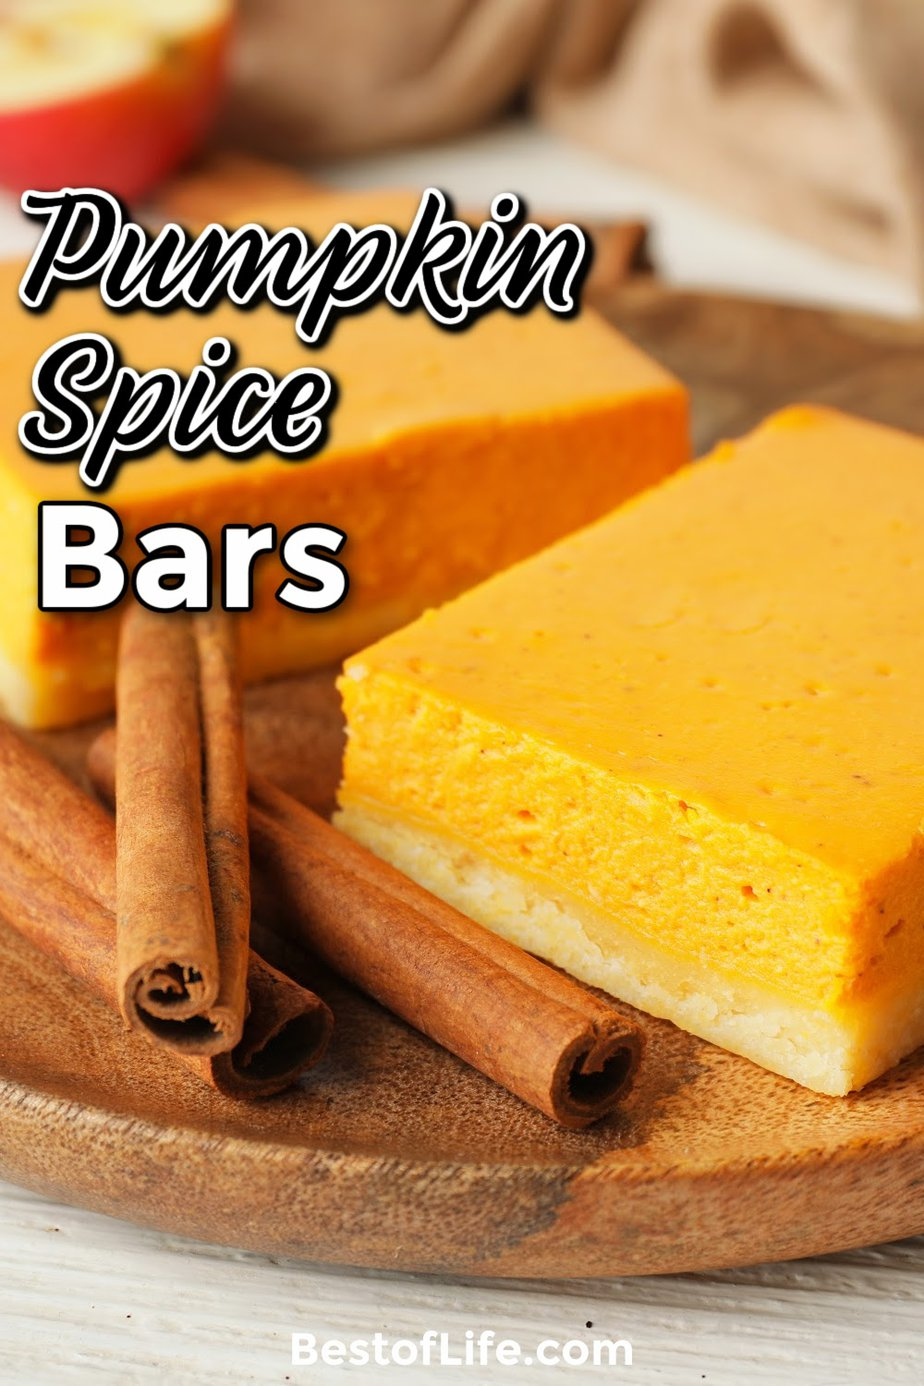 Nothing says fall like the smell of pumpkin spice throughout the home! This pumpkin spice bars recipe is easy and is perfect for pumpkin lovers. Fall Recipes | Halloween Recipes | Thanksgiving Recipes | Pumpkin Recipes | Pumpkin Spice Recipes | Recipes with Pumpkin | Fall Dessert Recipes | Halloween Party Recipes | Thanksgiving Dessert Recipes #fallrecipes #pumpkinspice via @thebestoflife